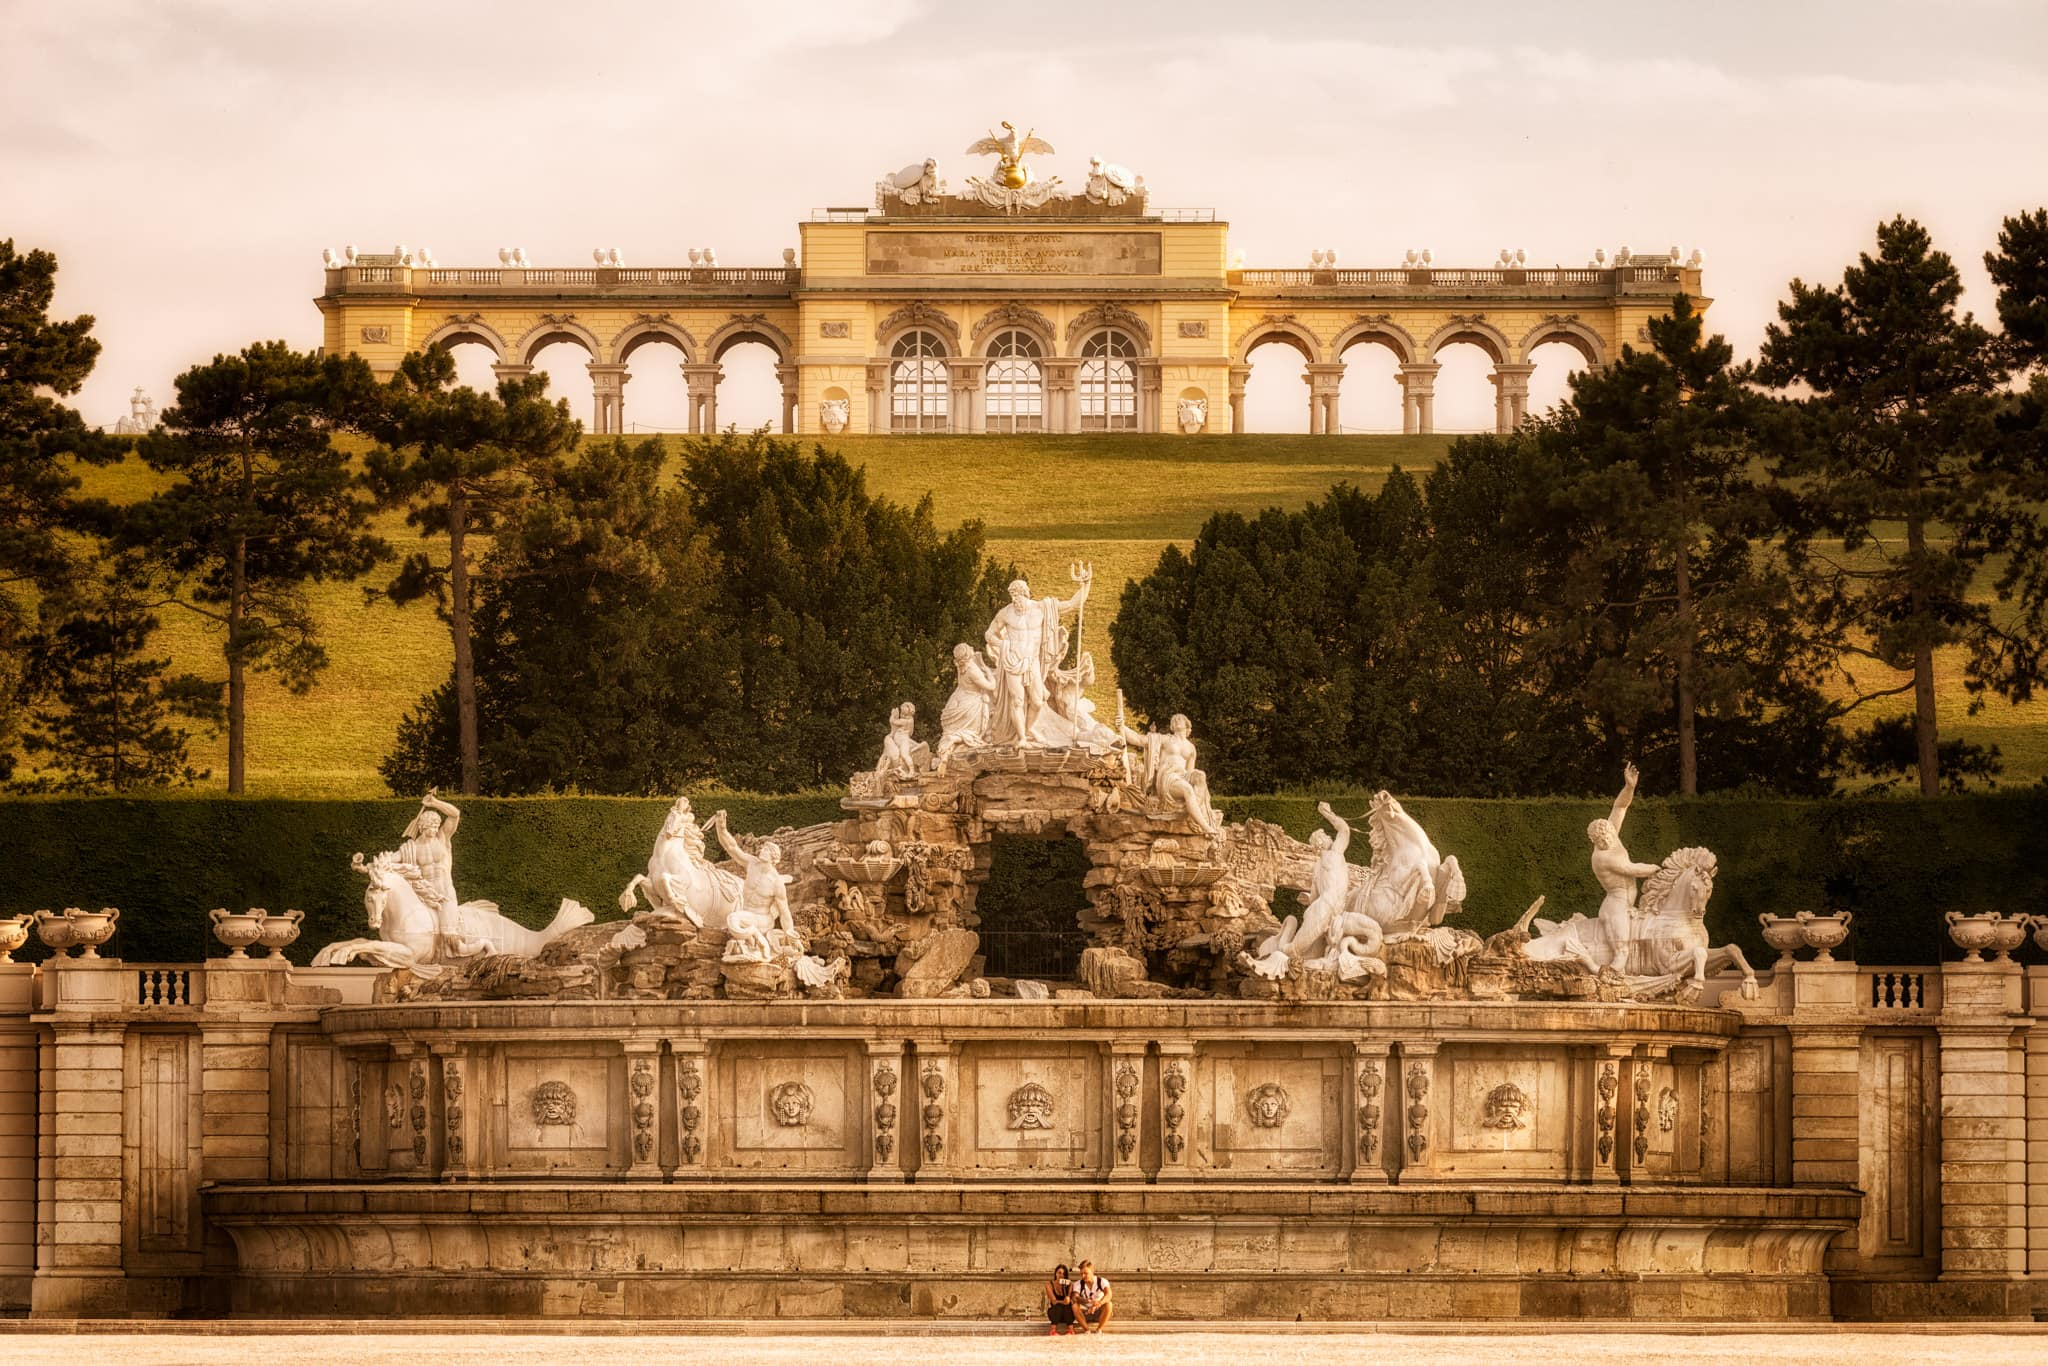 Schönbrunn Palace in Vienna Austria with the Glorietta Fountain